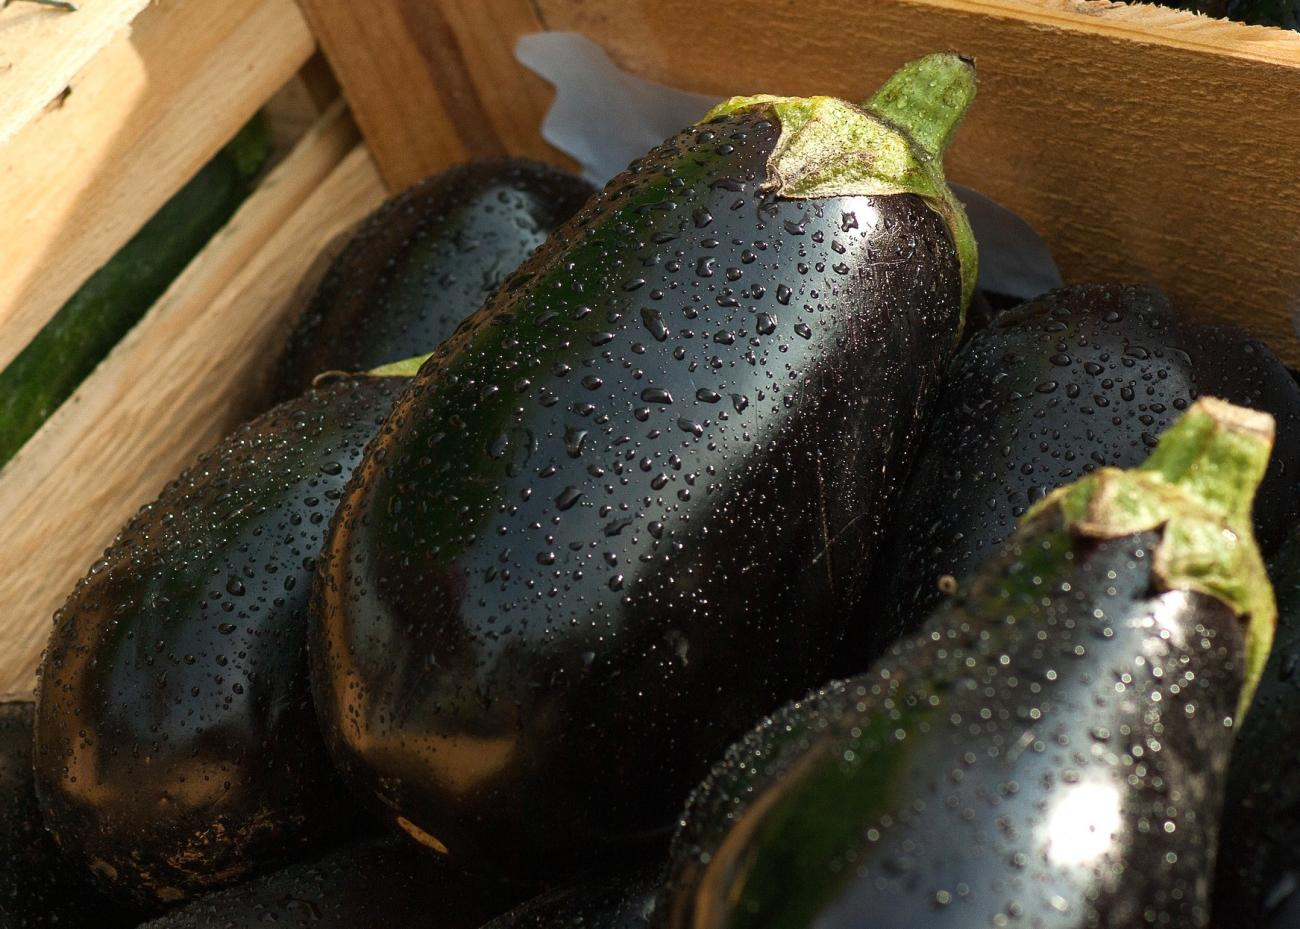 Eggplant: Planting, Growing, and Harvesting Eggplants | The Old